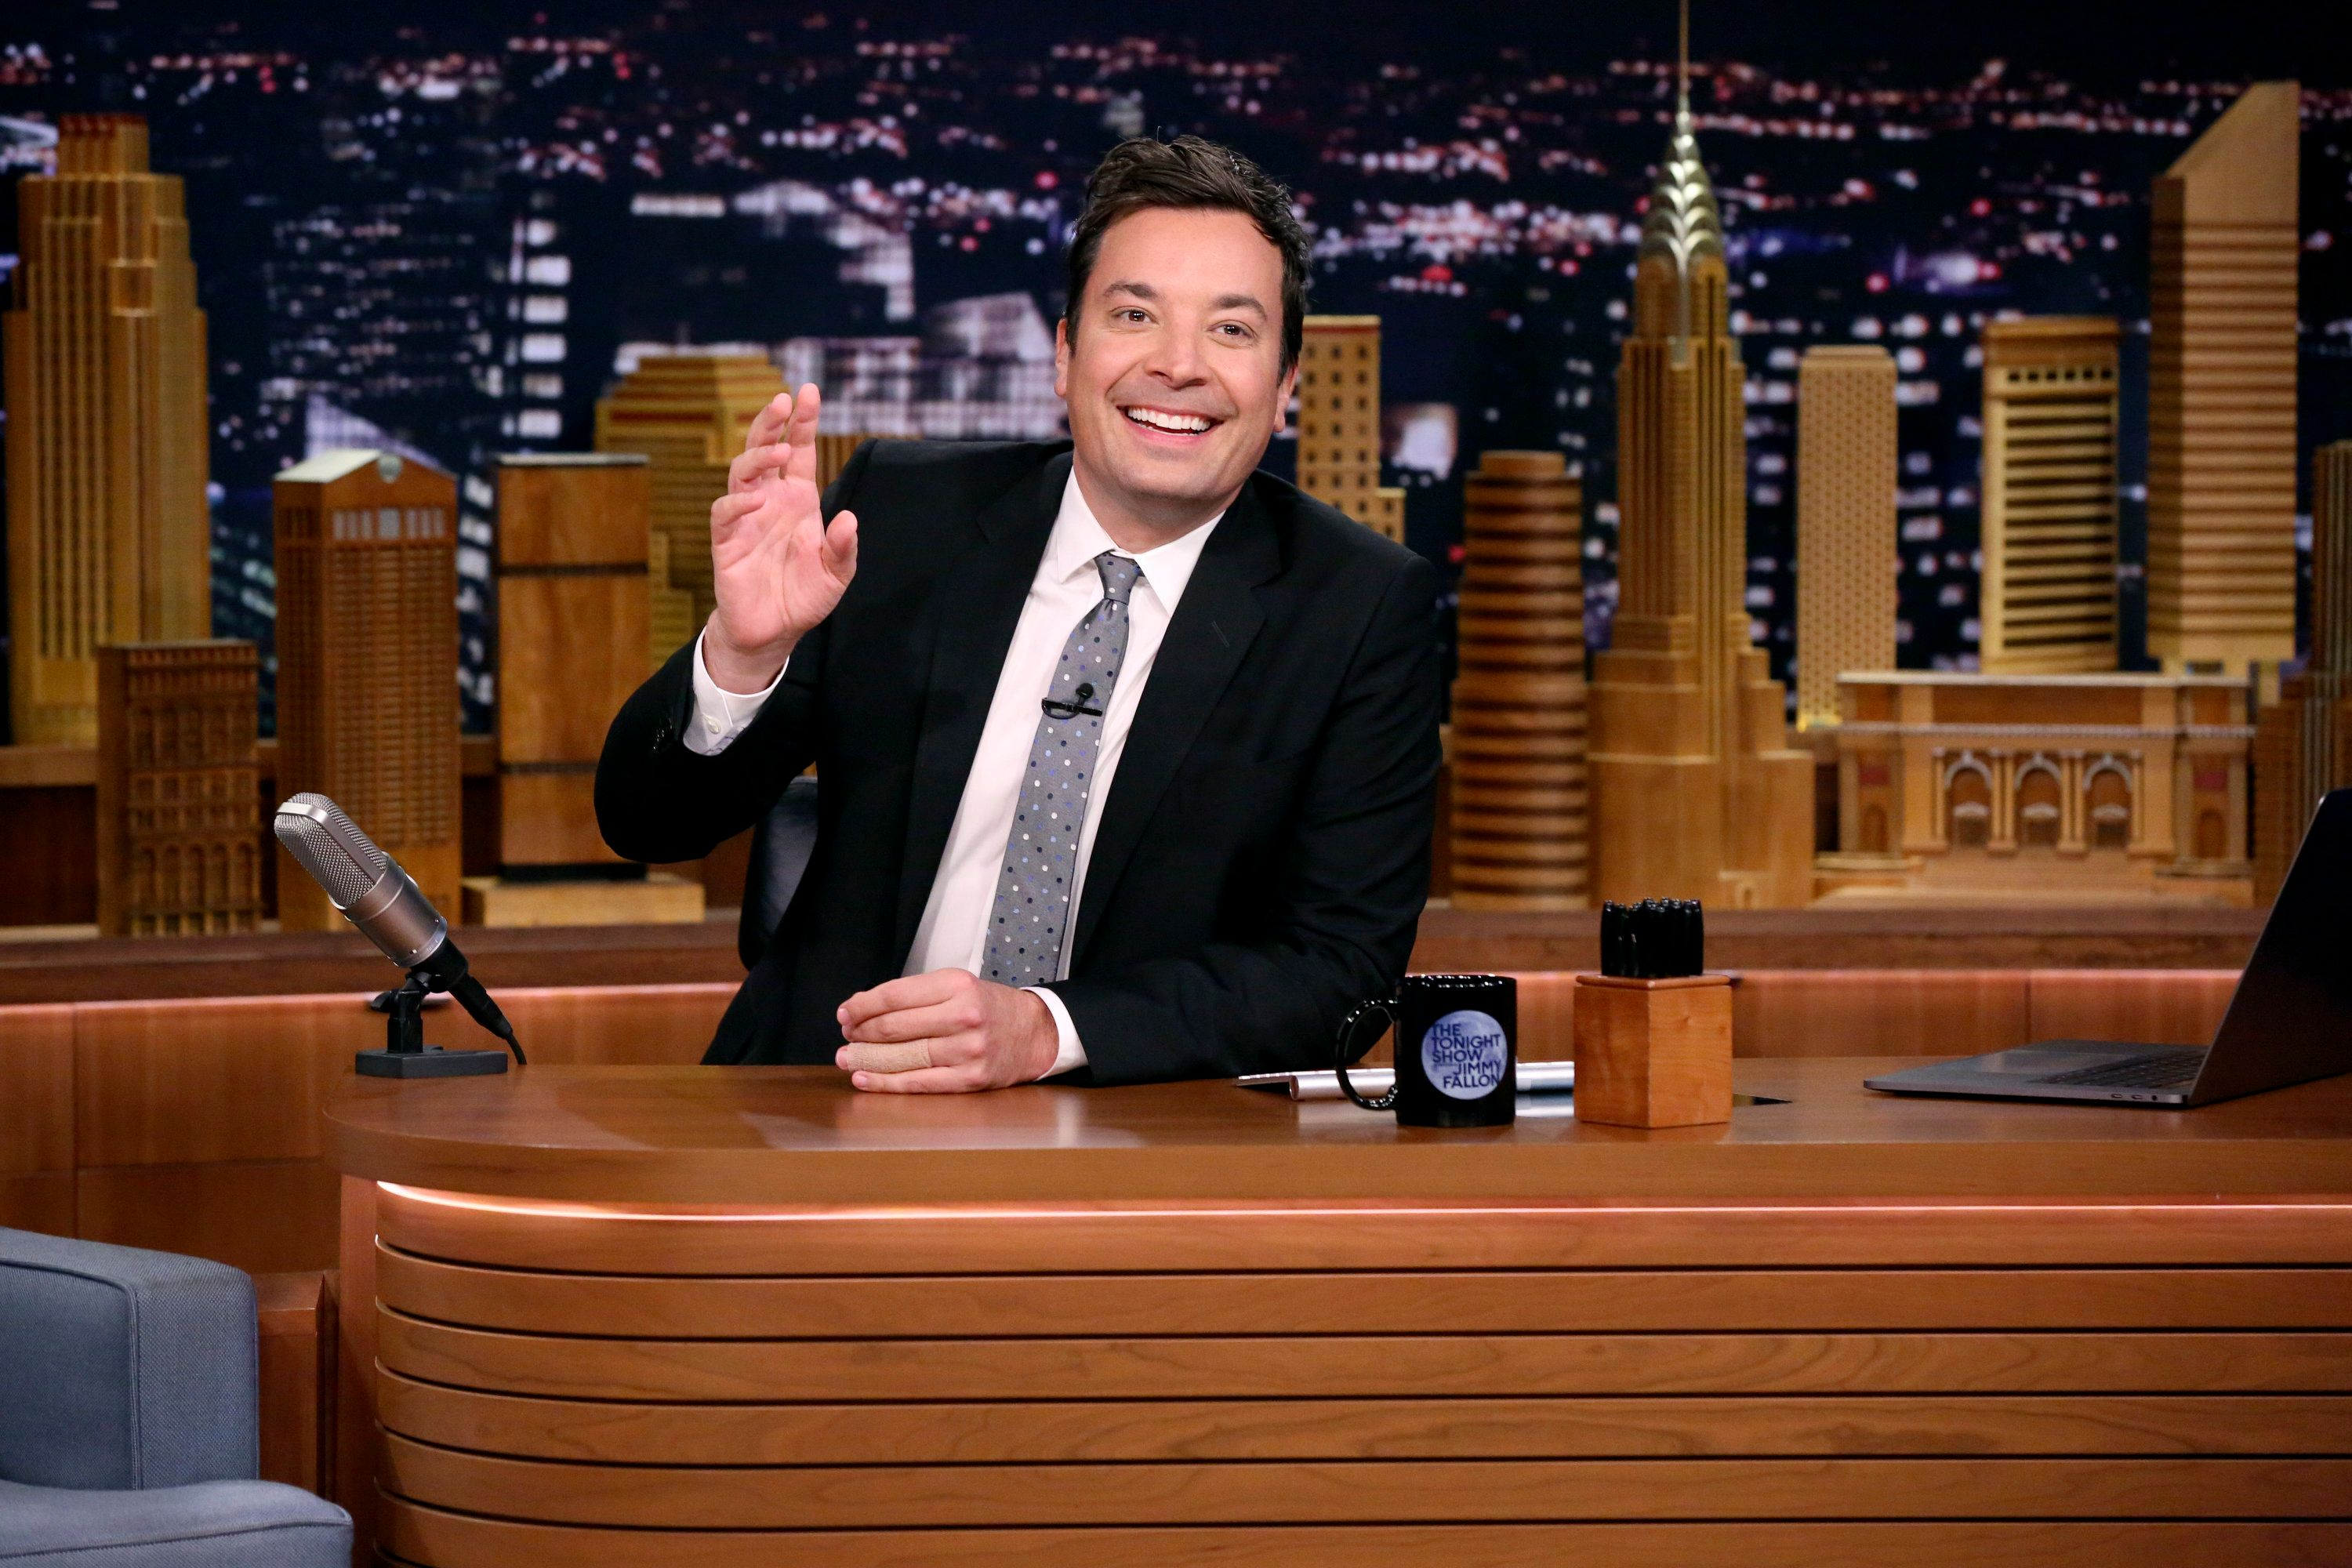 Jimmy Fallon's mother Gloria dies at the age of 68